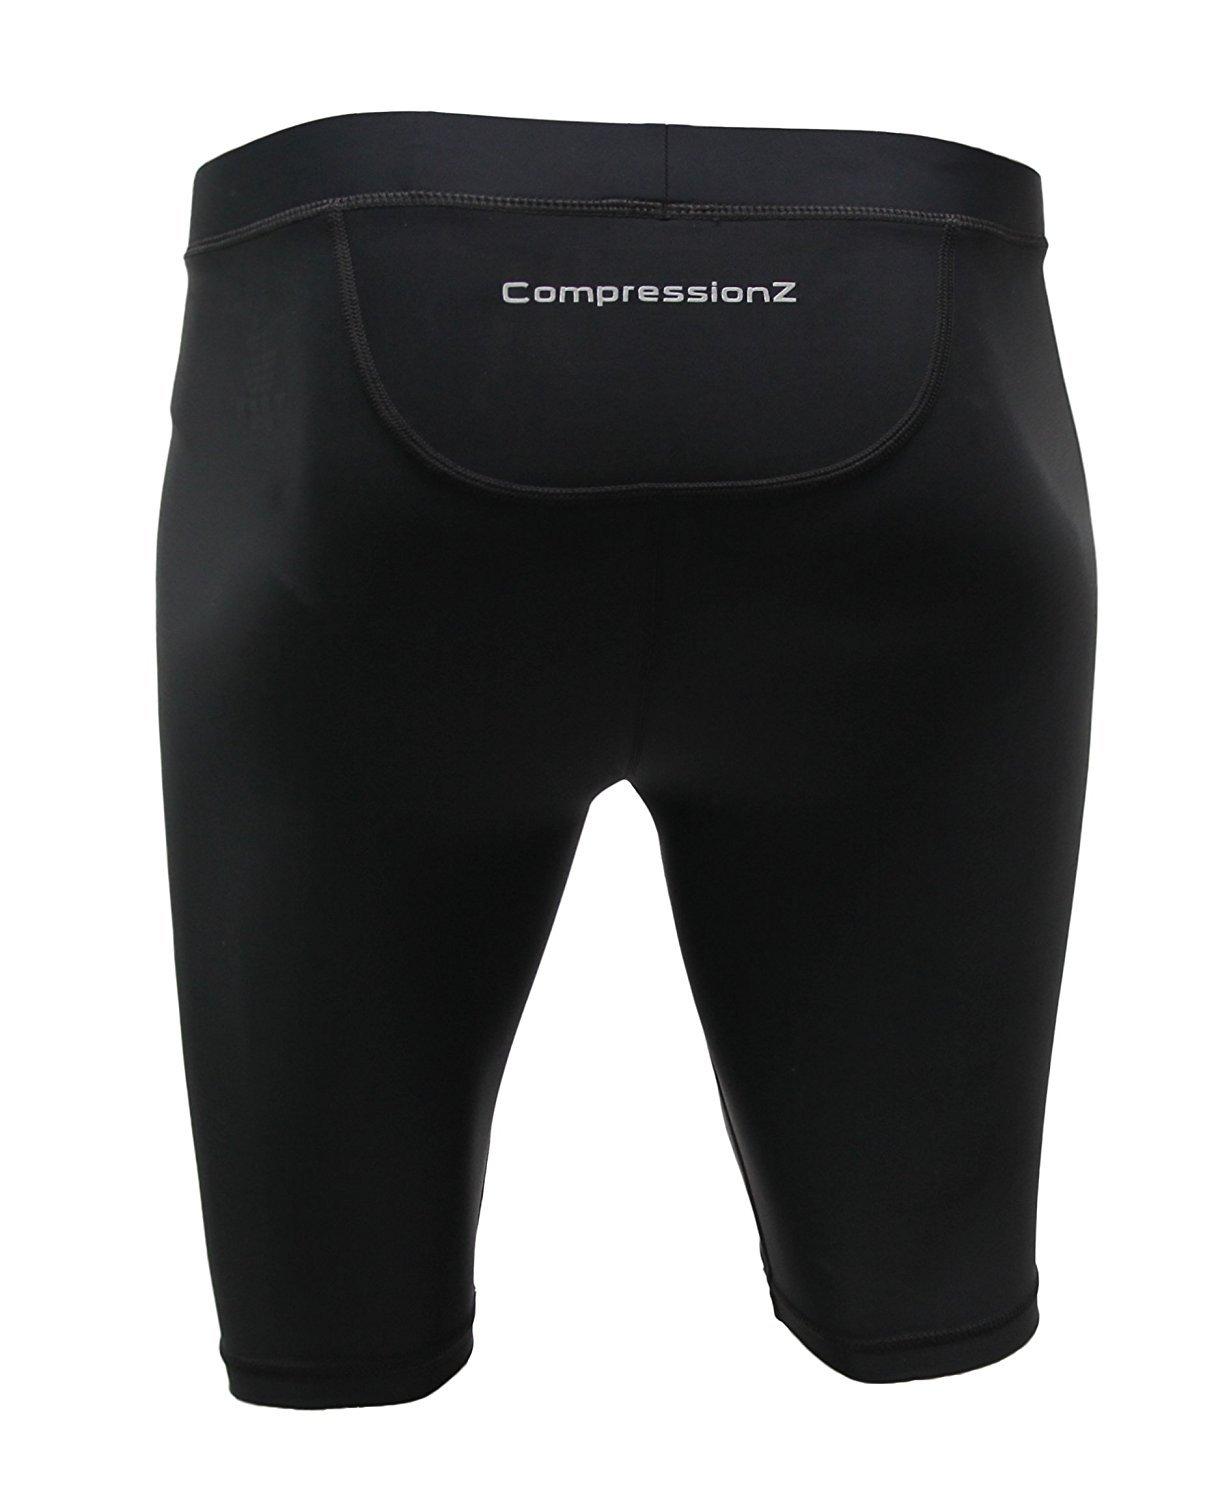 CompressionZ Bike Compression Shorts